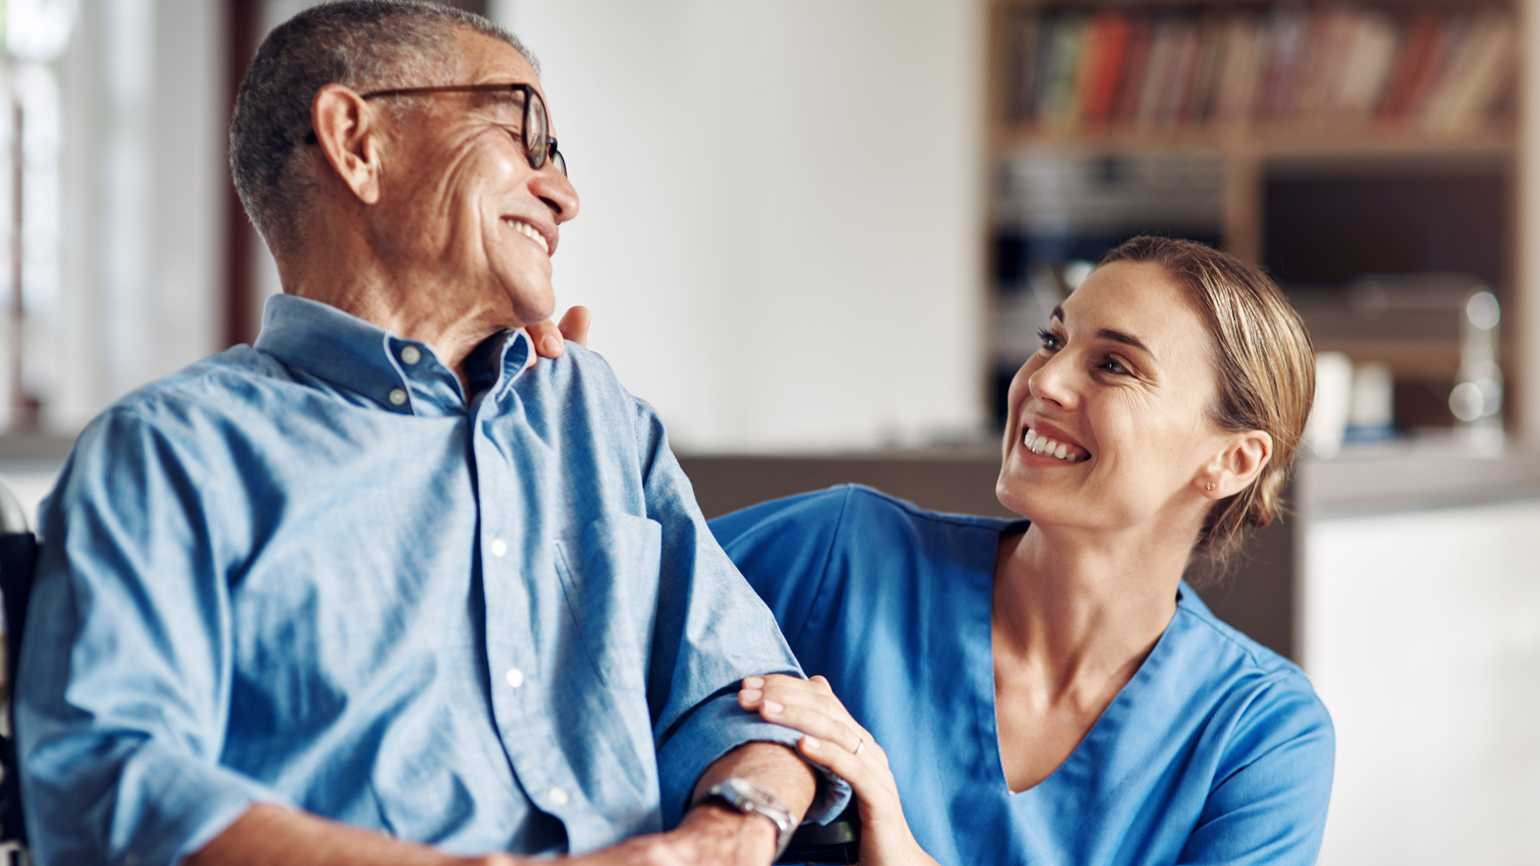 An in-home caregiver smiling at her client.